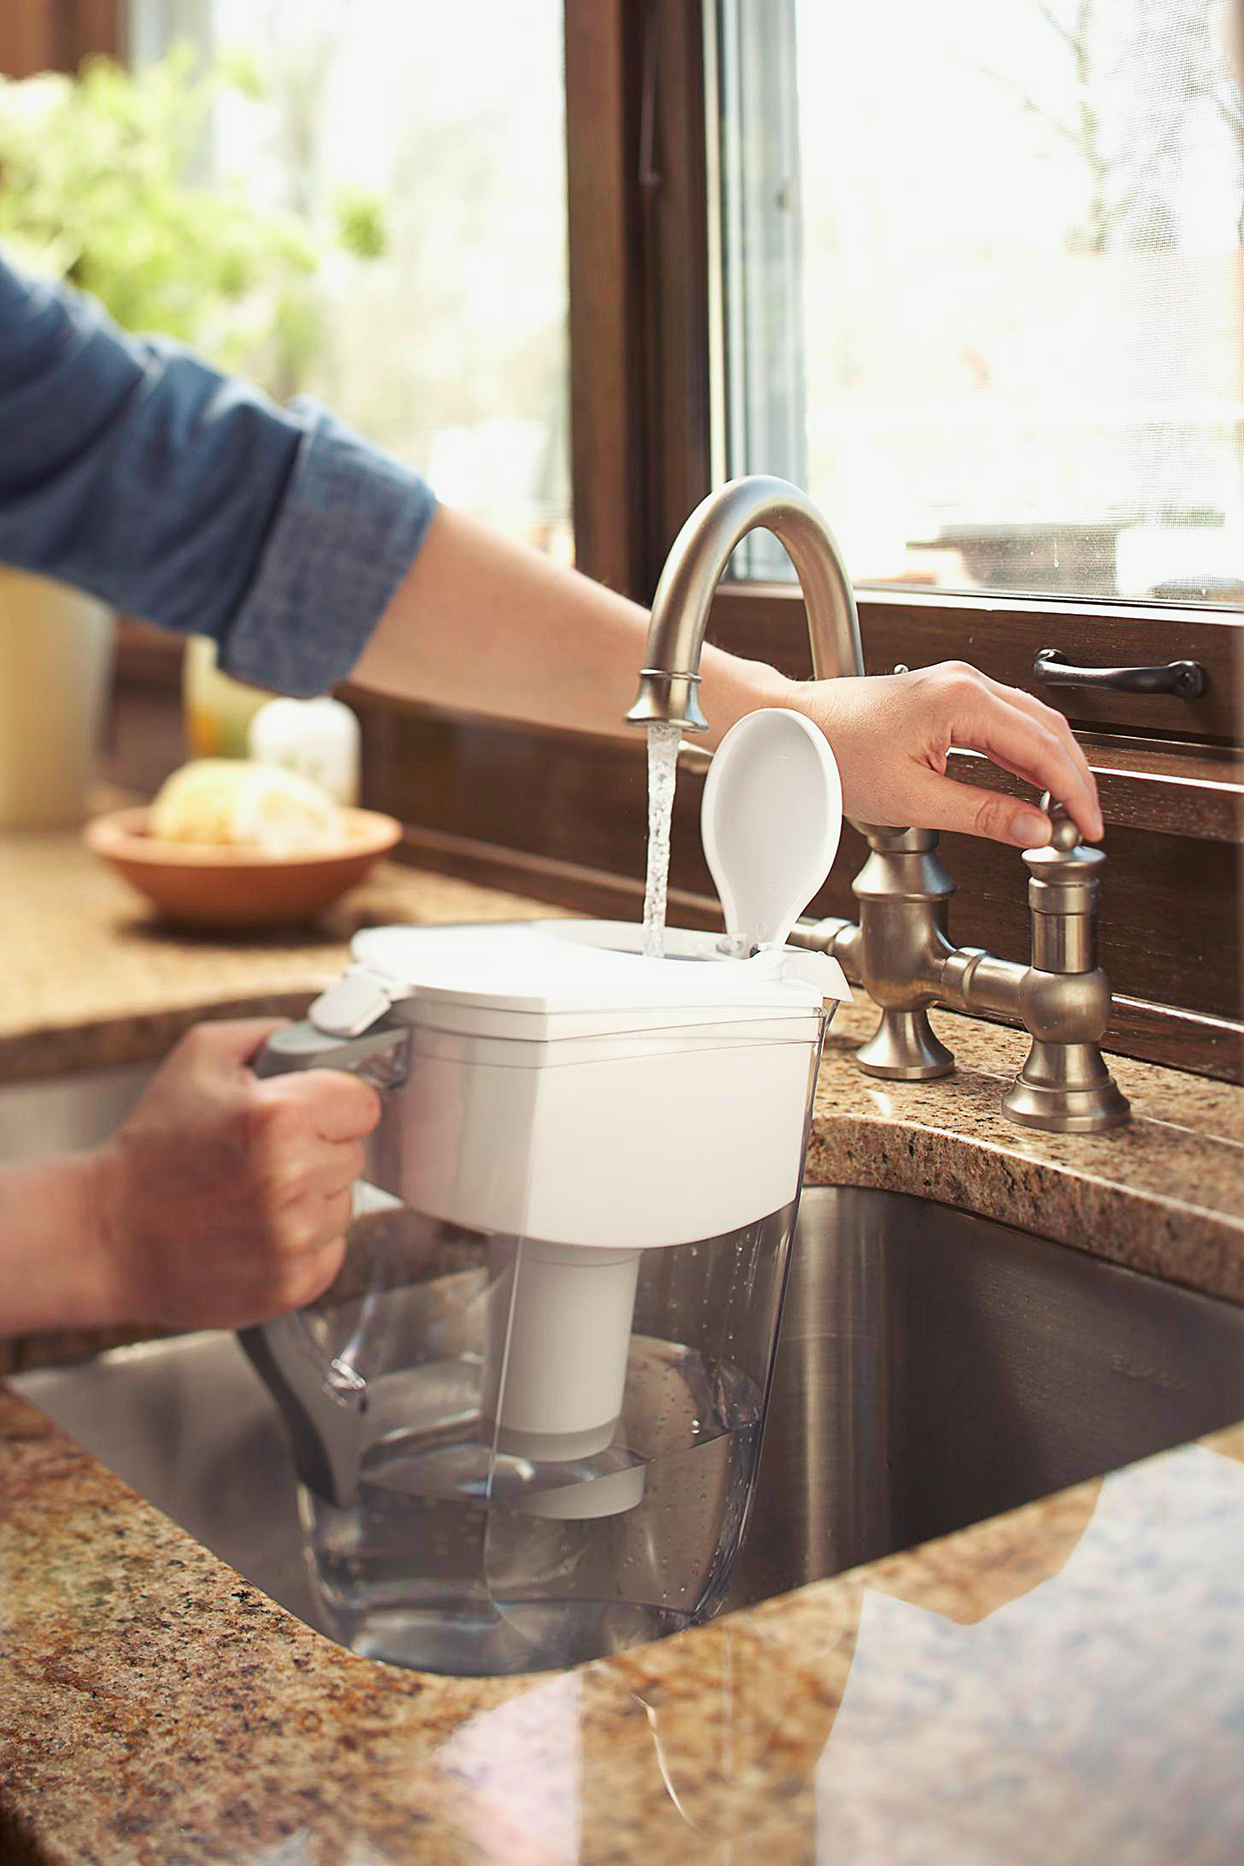 filling water filter pitcher from faucet